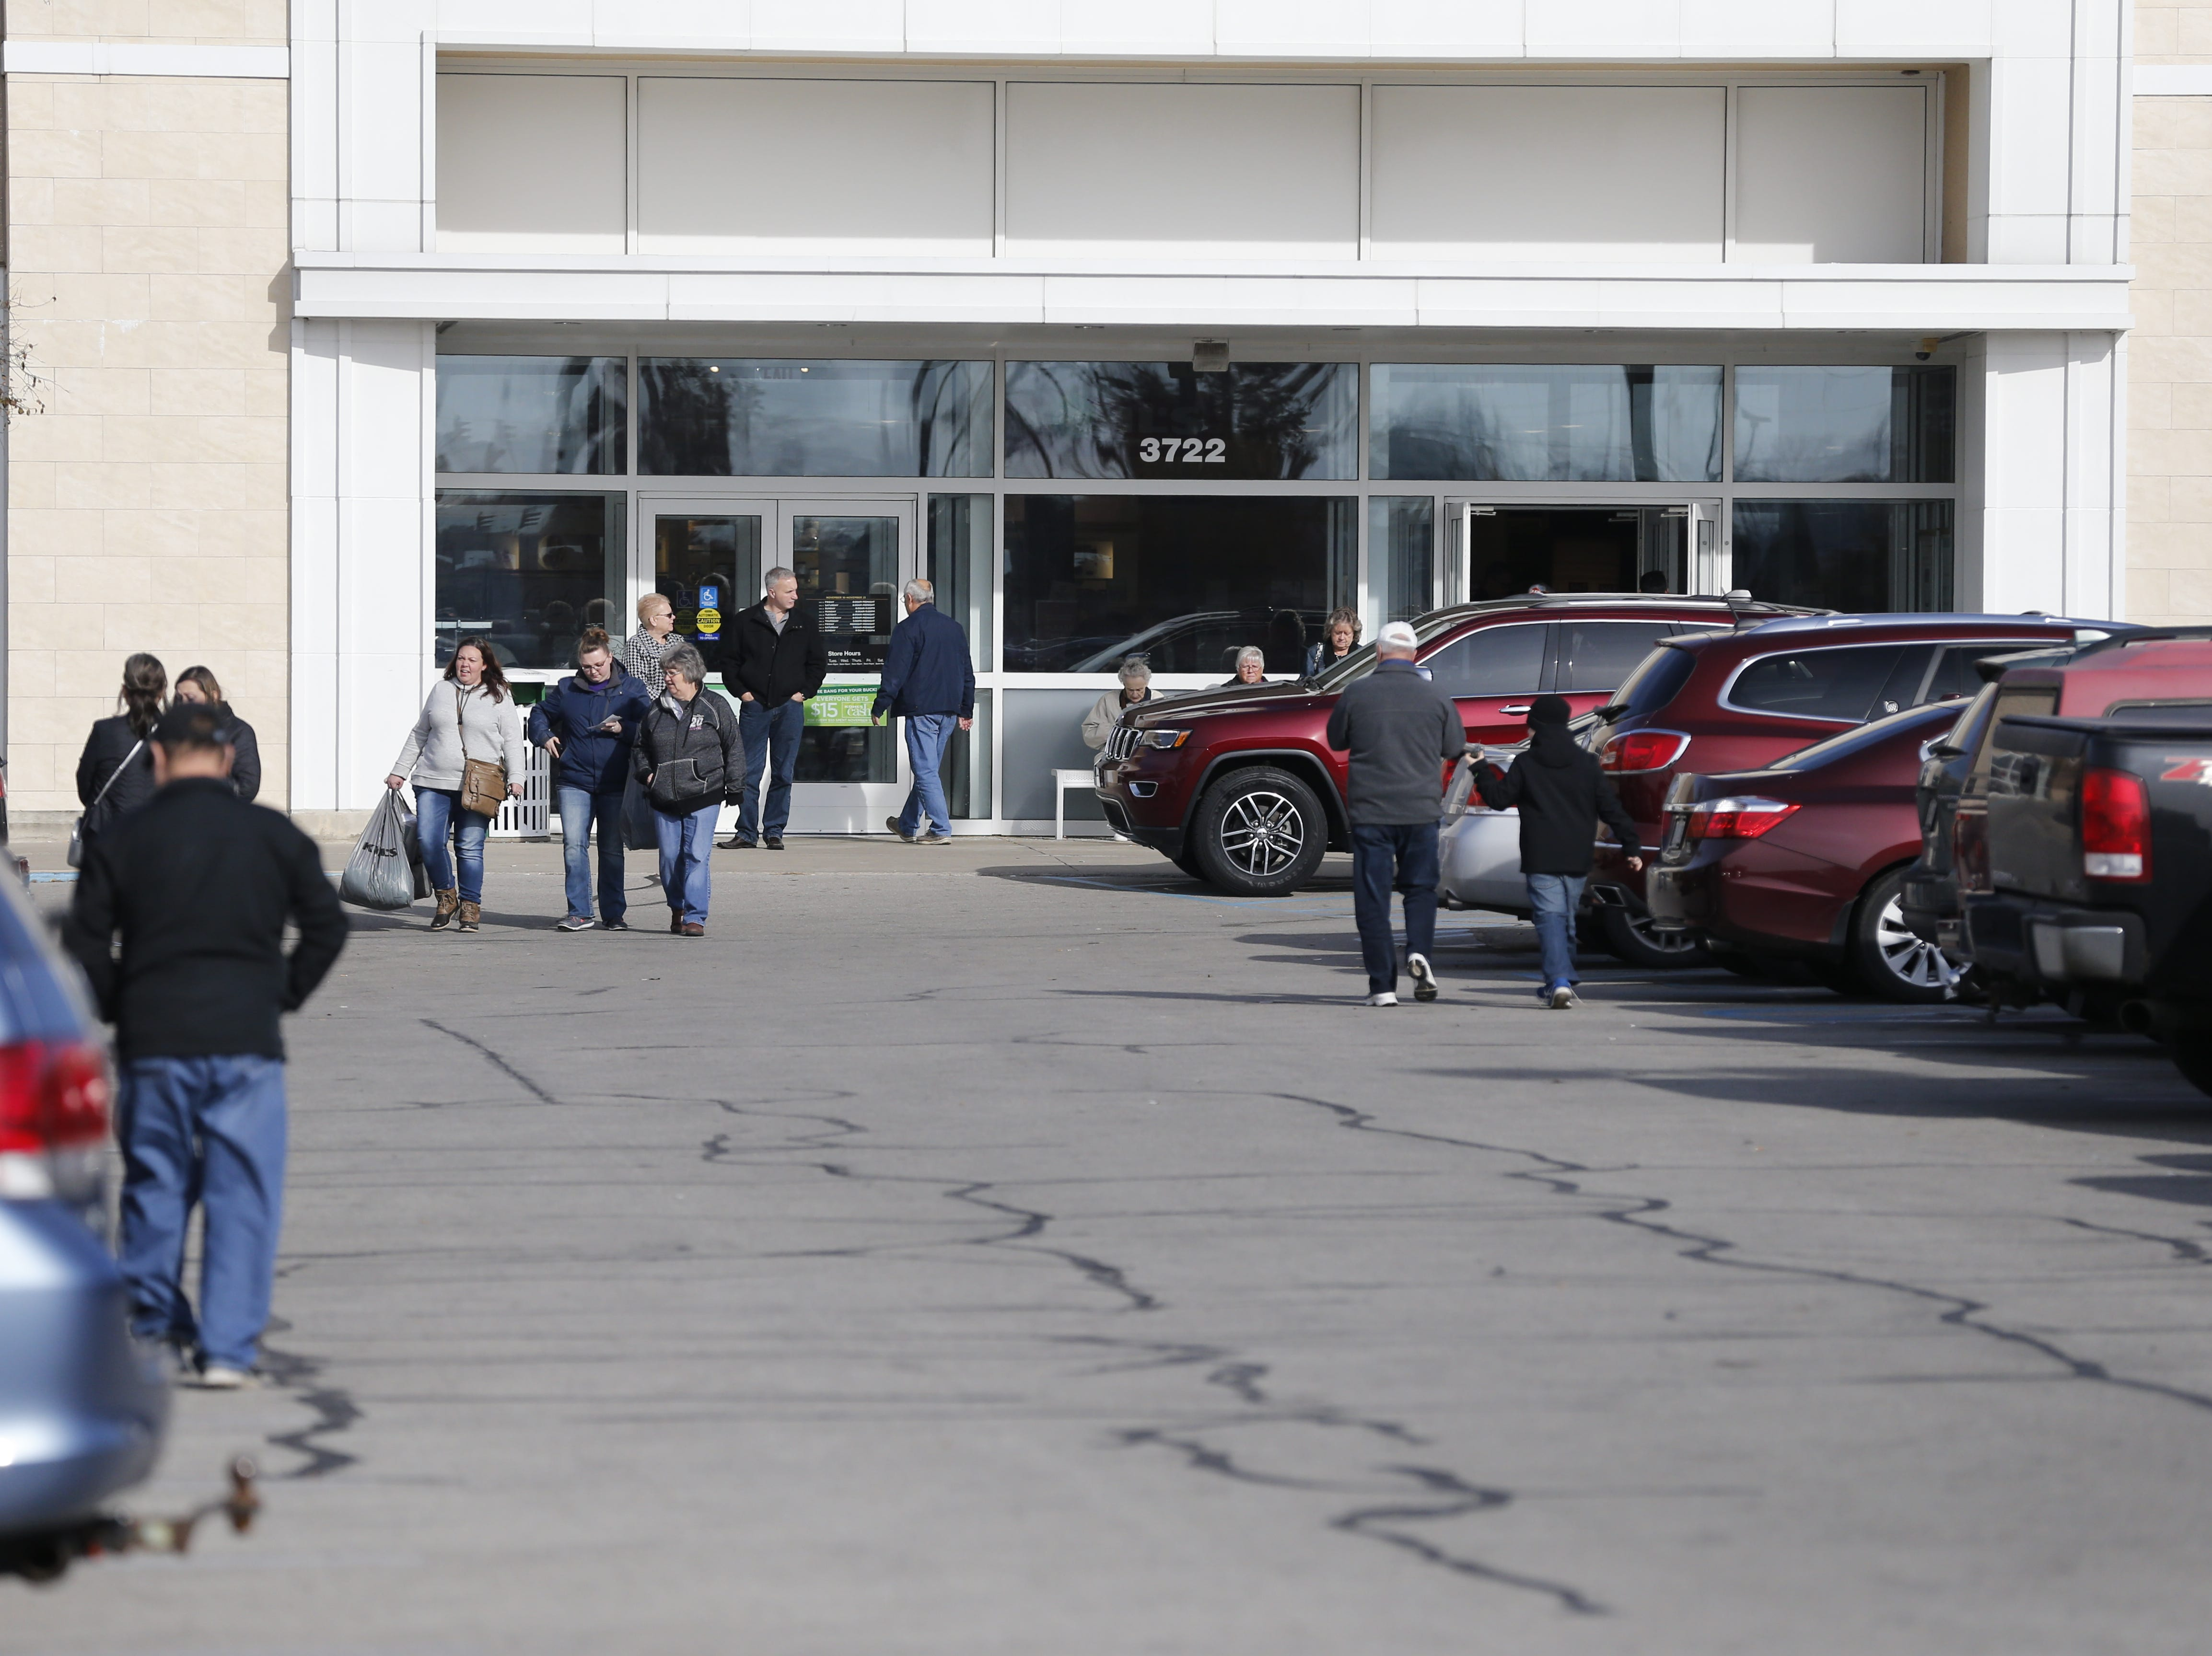 The parking lots for Dick's Sporting Goods, Best Buy, Kohl's, Menards and other east-side Richmond retailers were packed Friday morning, Nov. 23, 2018.